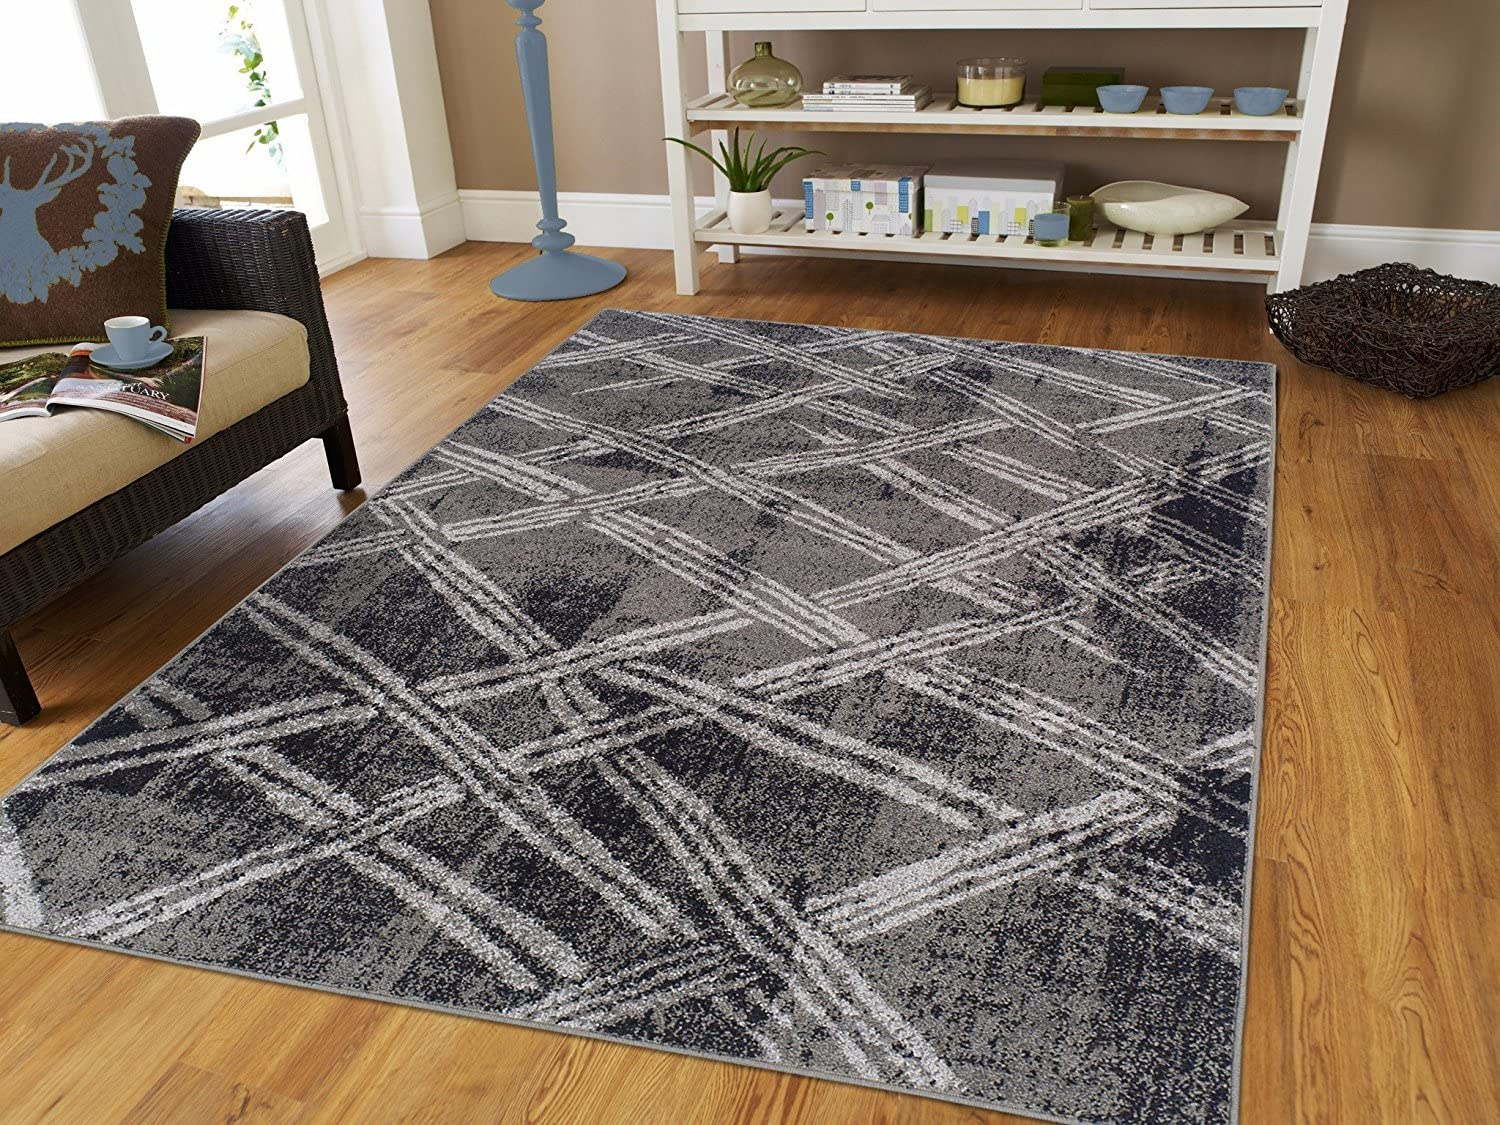 Luxury Fashion Contemporary Rugs For Living Room 8x8 Modern Area Rug 8x8  Rugs for Bedroom Grey Black Carpet Clearance, 8x8 Rugs